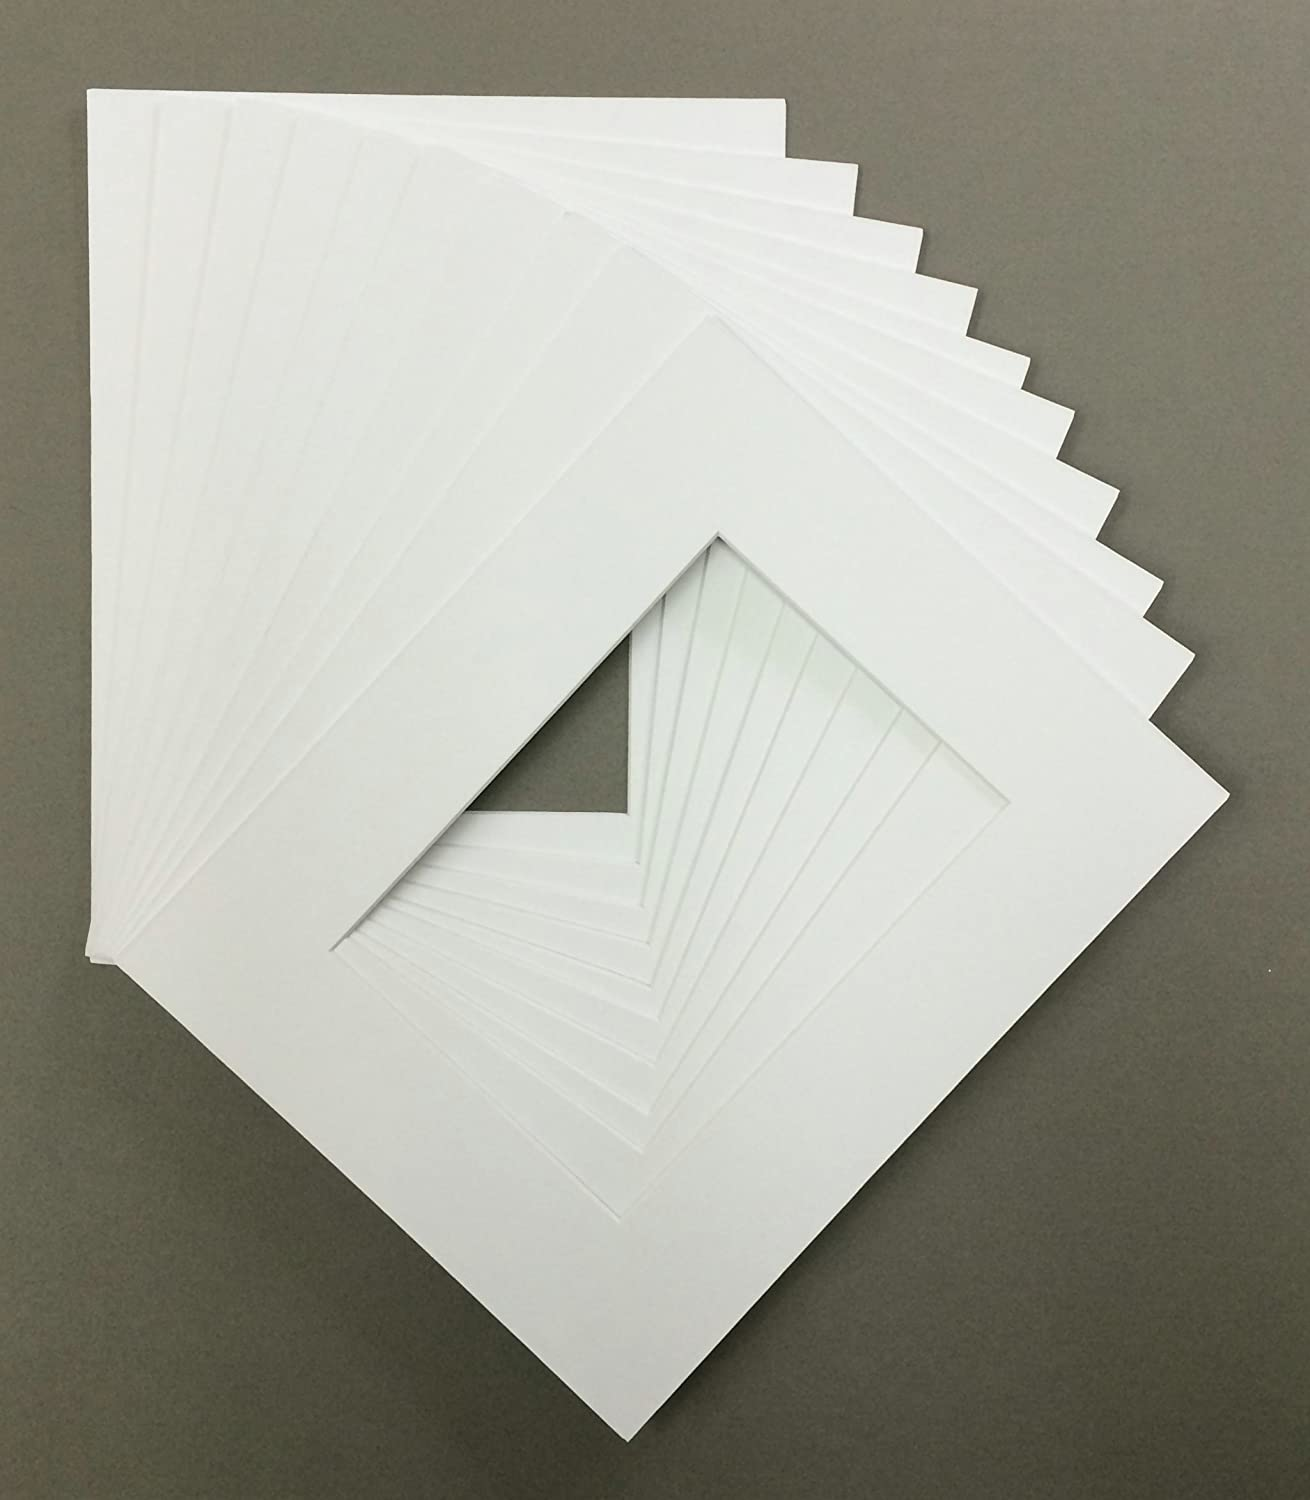 Amazon Pack Of 10 8x10 White Picture Mats Core Cut For 5x7 Pictures Arts Crafts Sewing